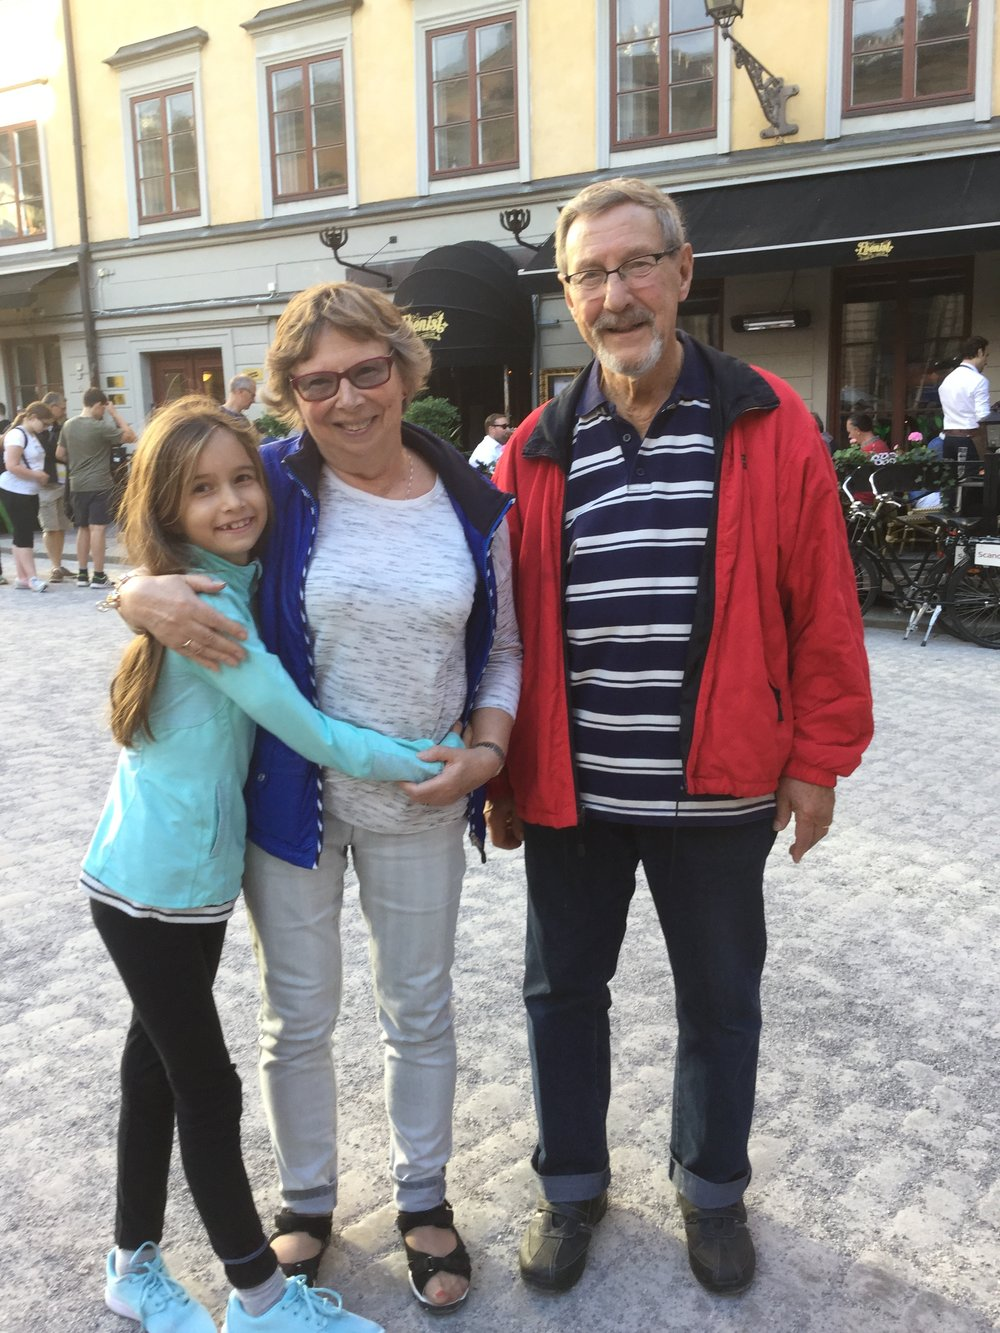 Lili, Kirsti and Pappa Anssi at Stortorget right after the concert. Stortorget (which is actually very small) is Sweden's oldest square.